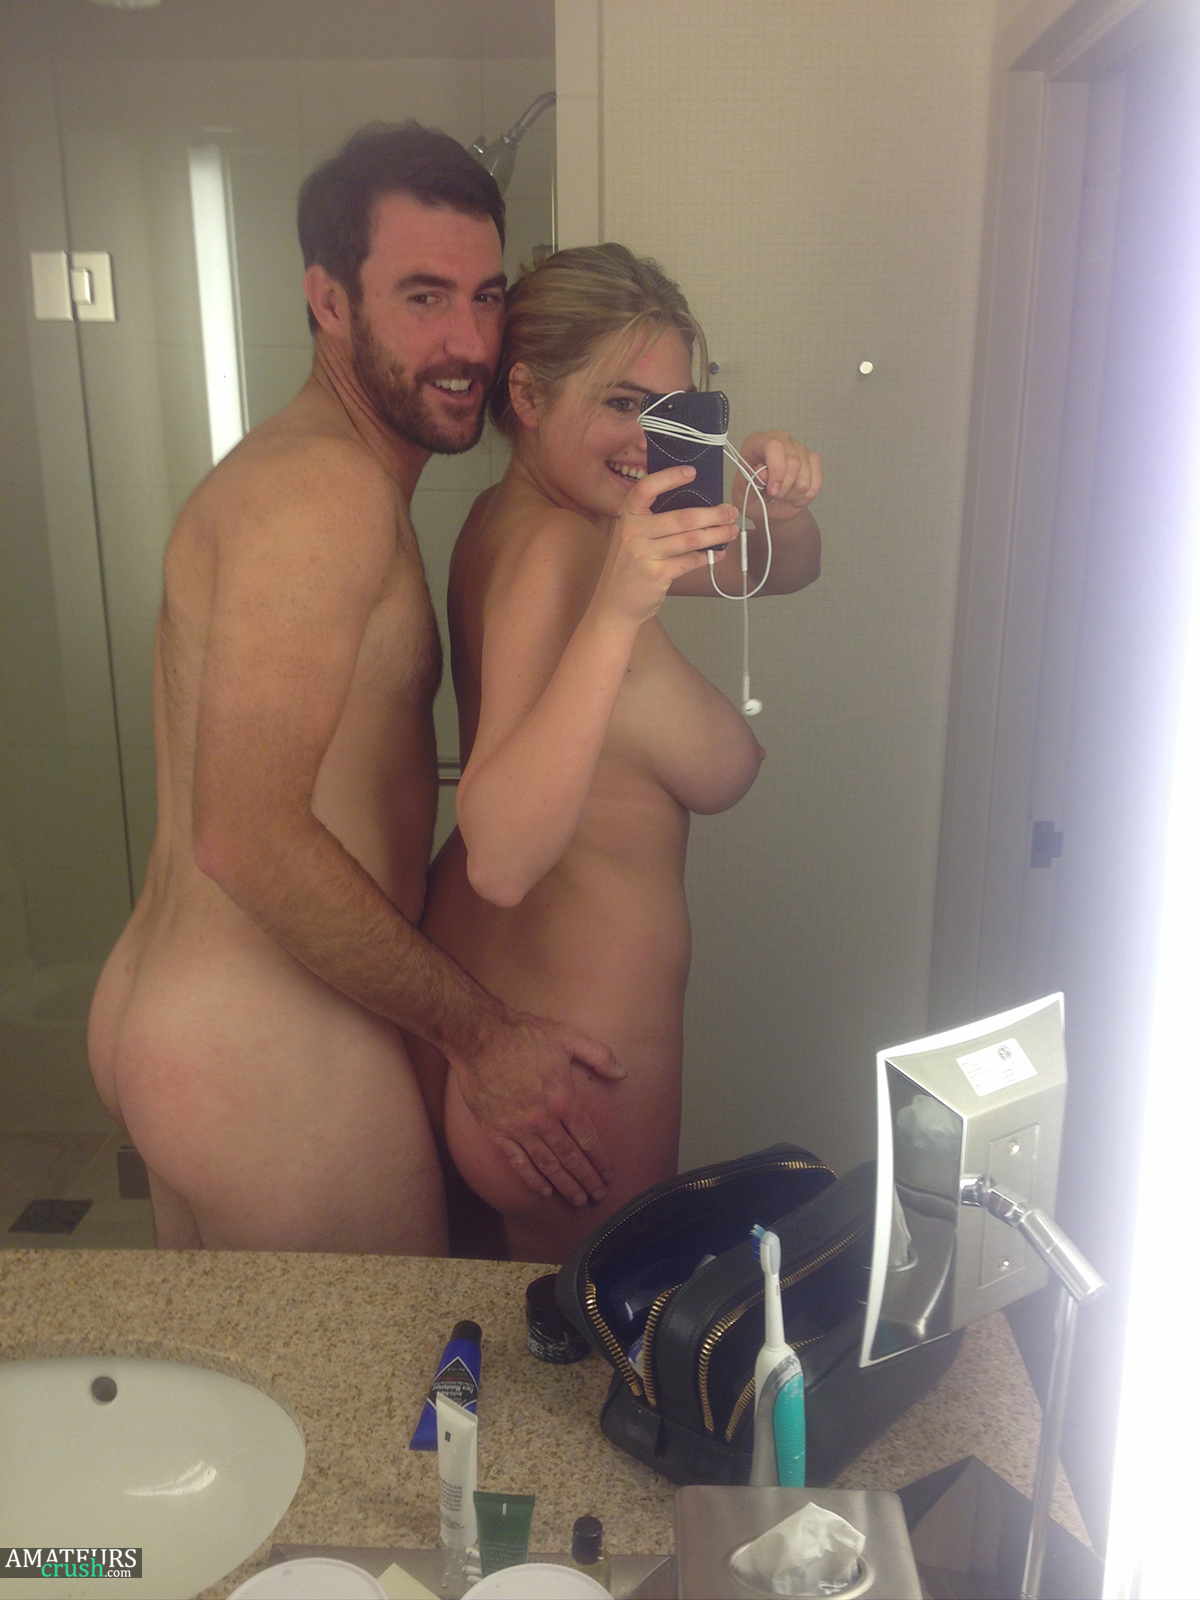 Kate upton nude leak pictures